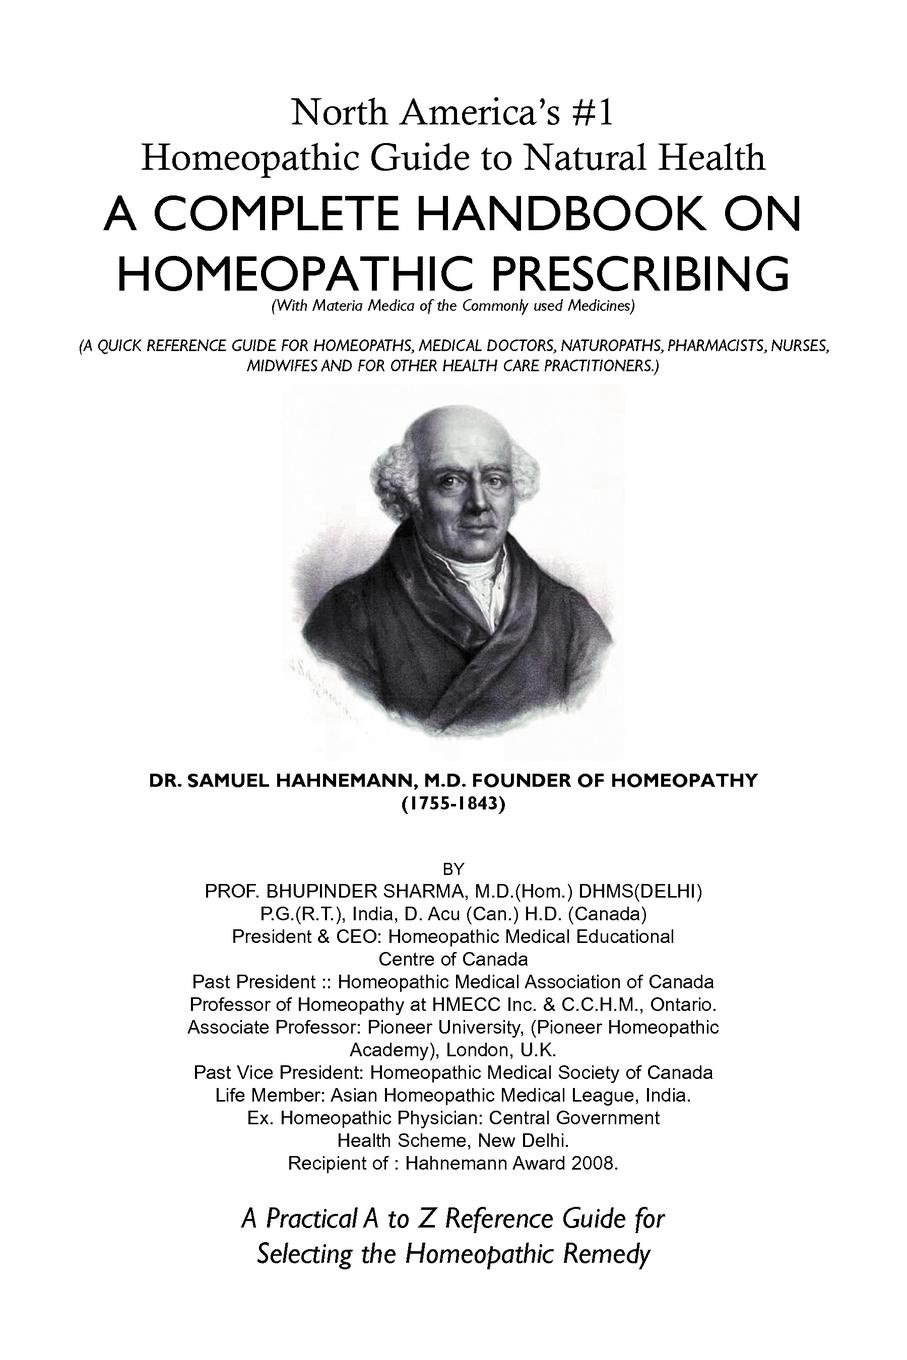 Bhupinder M. D. Sharma North America's #1 Homeopathic Guide to Natural Health. A Complete Handbook on Homeopathic Prescribing the denver homeopathic college